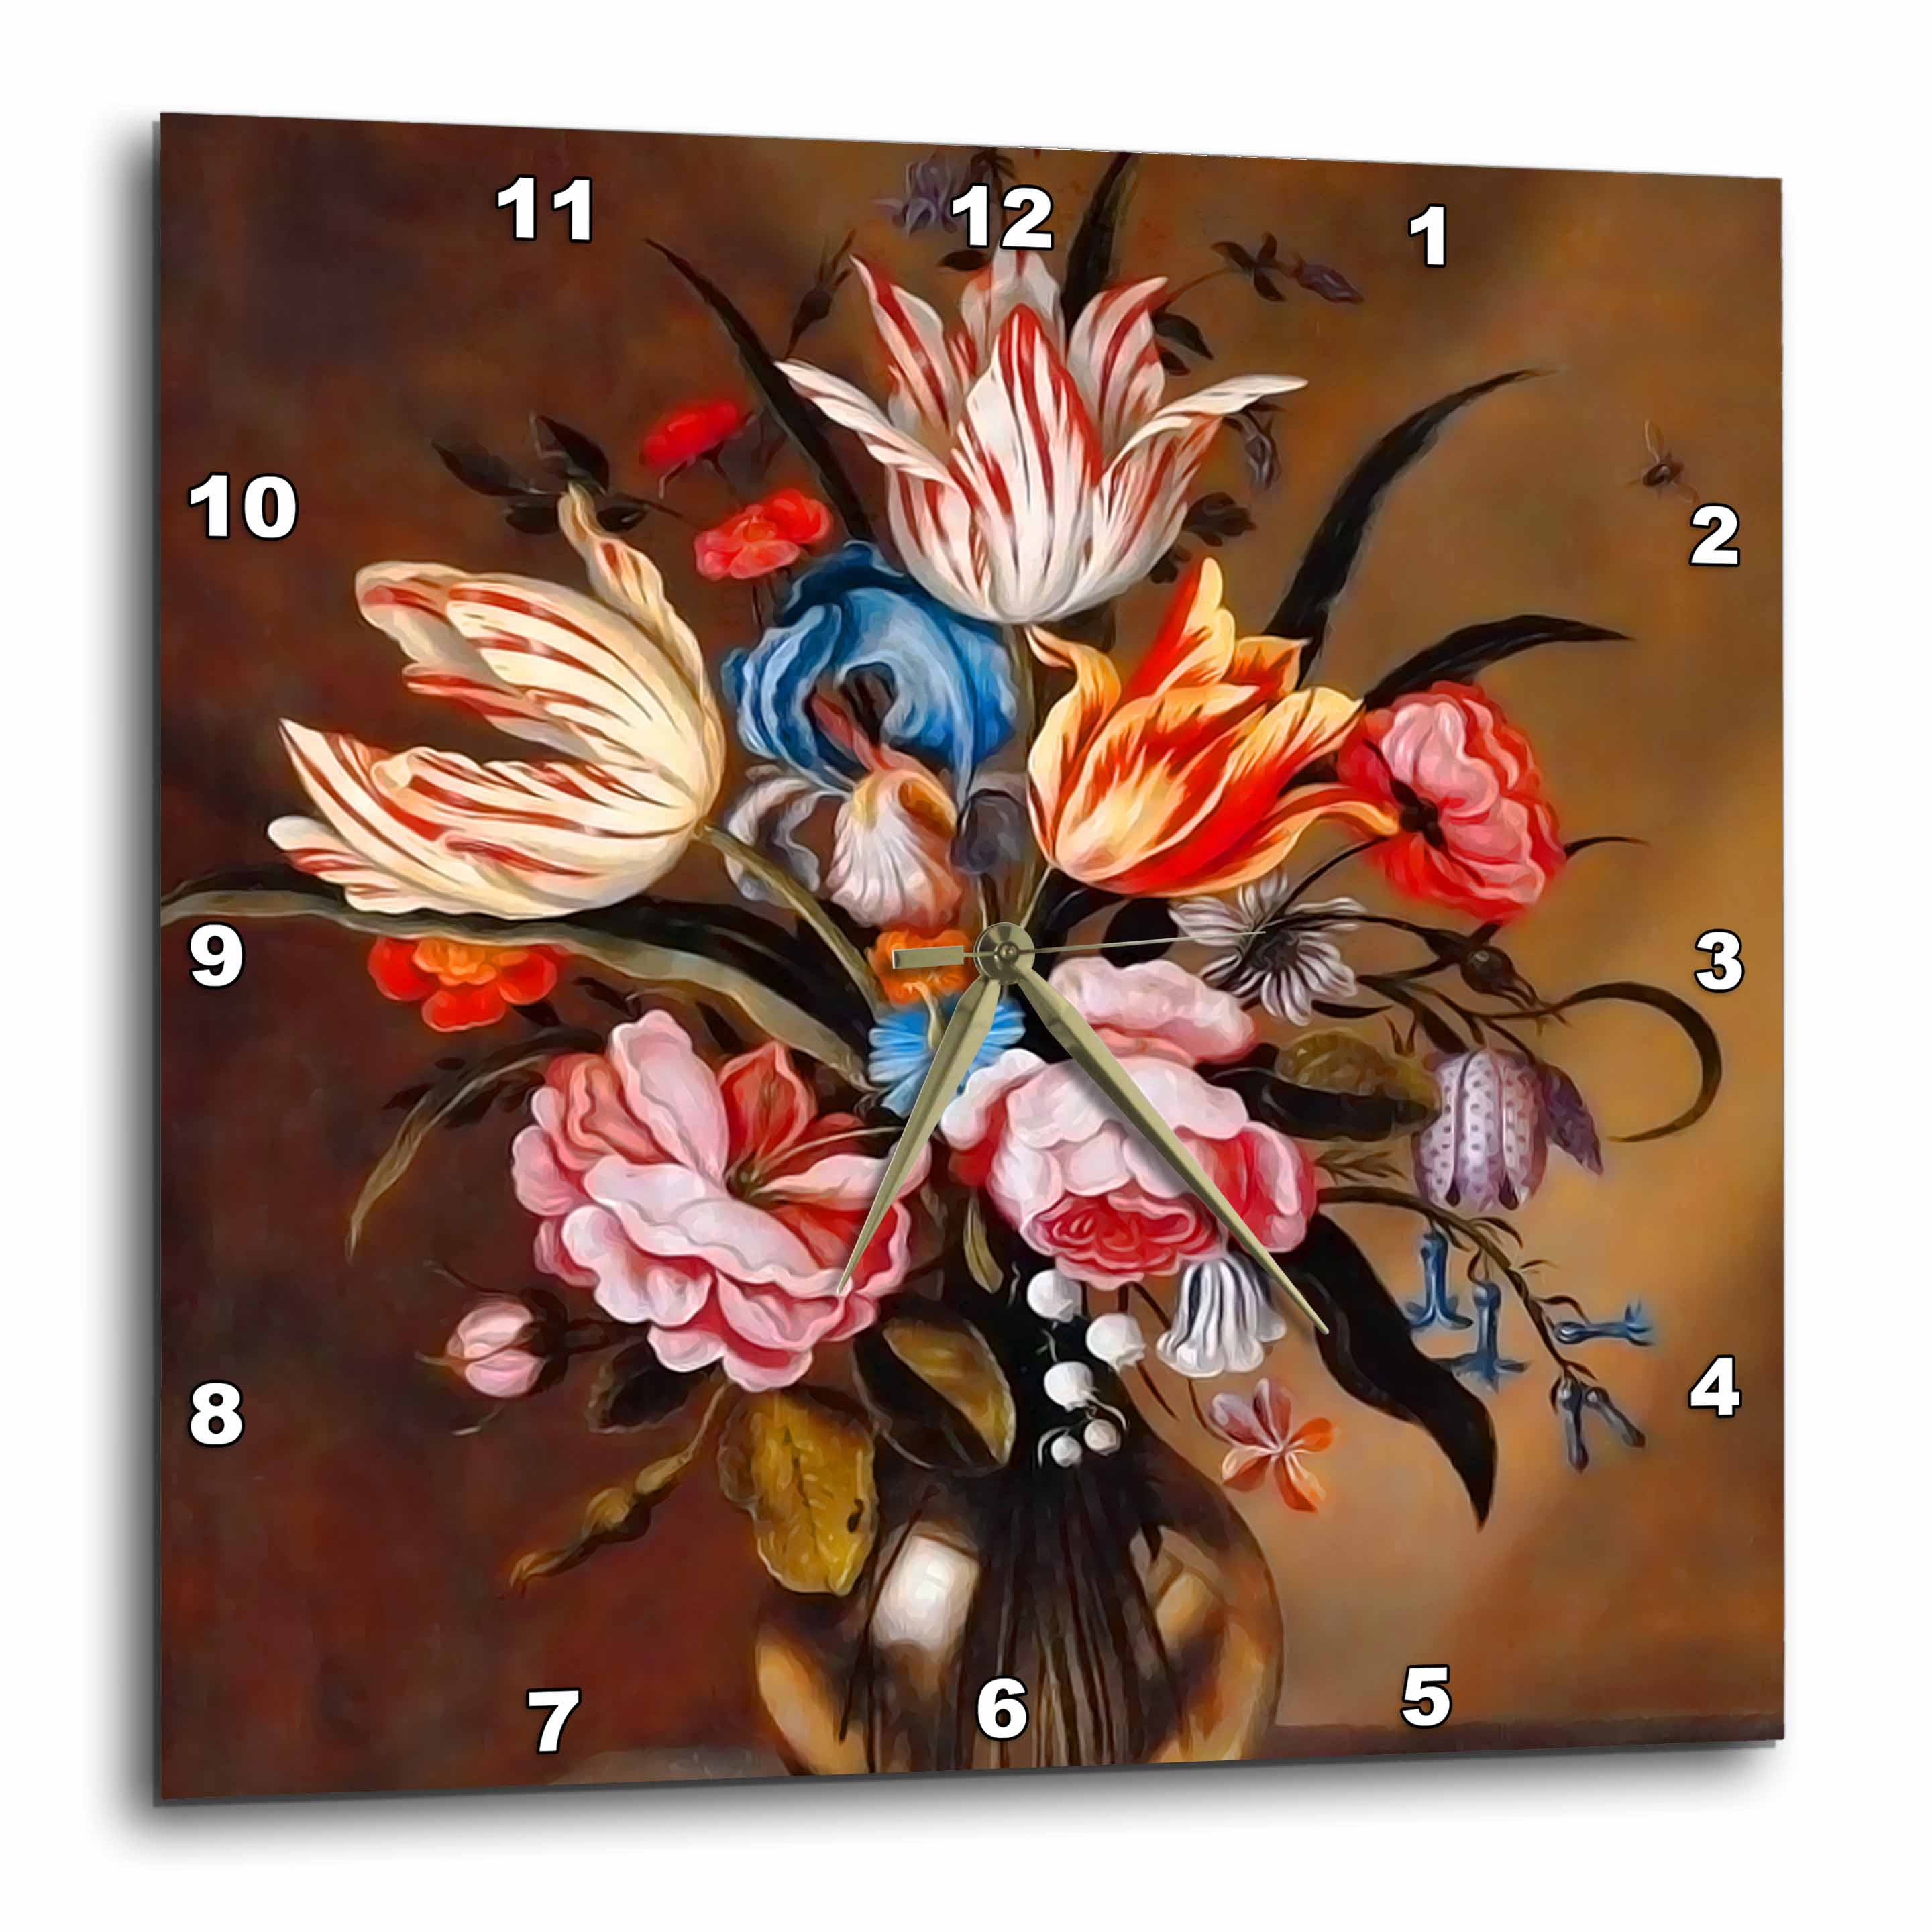 3dRose Vintage Flowers in a Vase by Dutch artist Abraham Bosschaert from 1632, Wall Clock, 15 by 15-inch